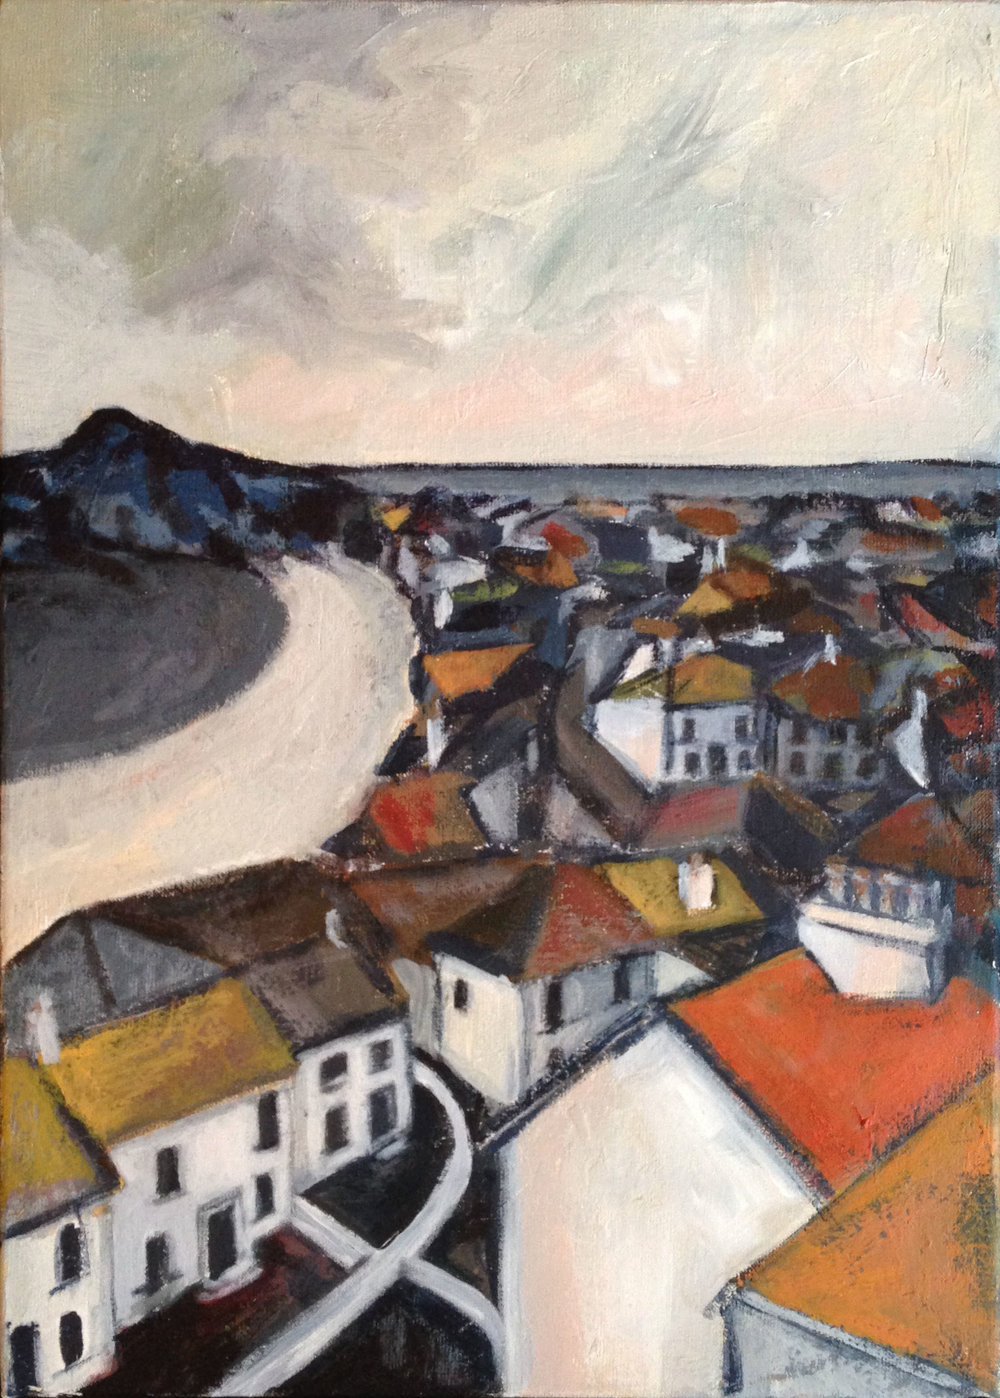 St Ives Roofs - acrylic on canvas  25x35cm £150